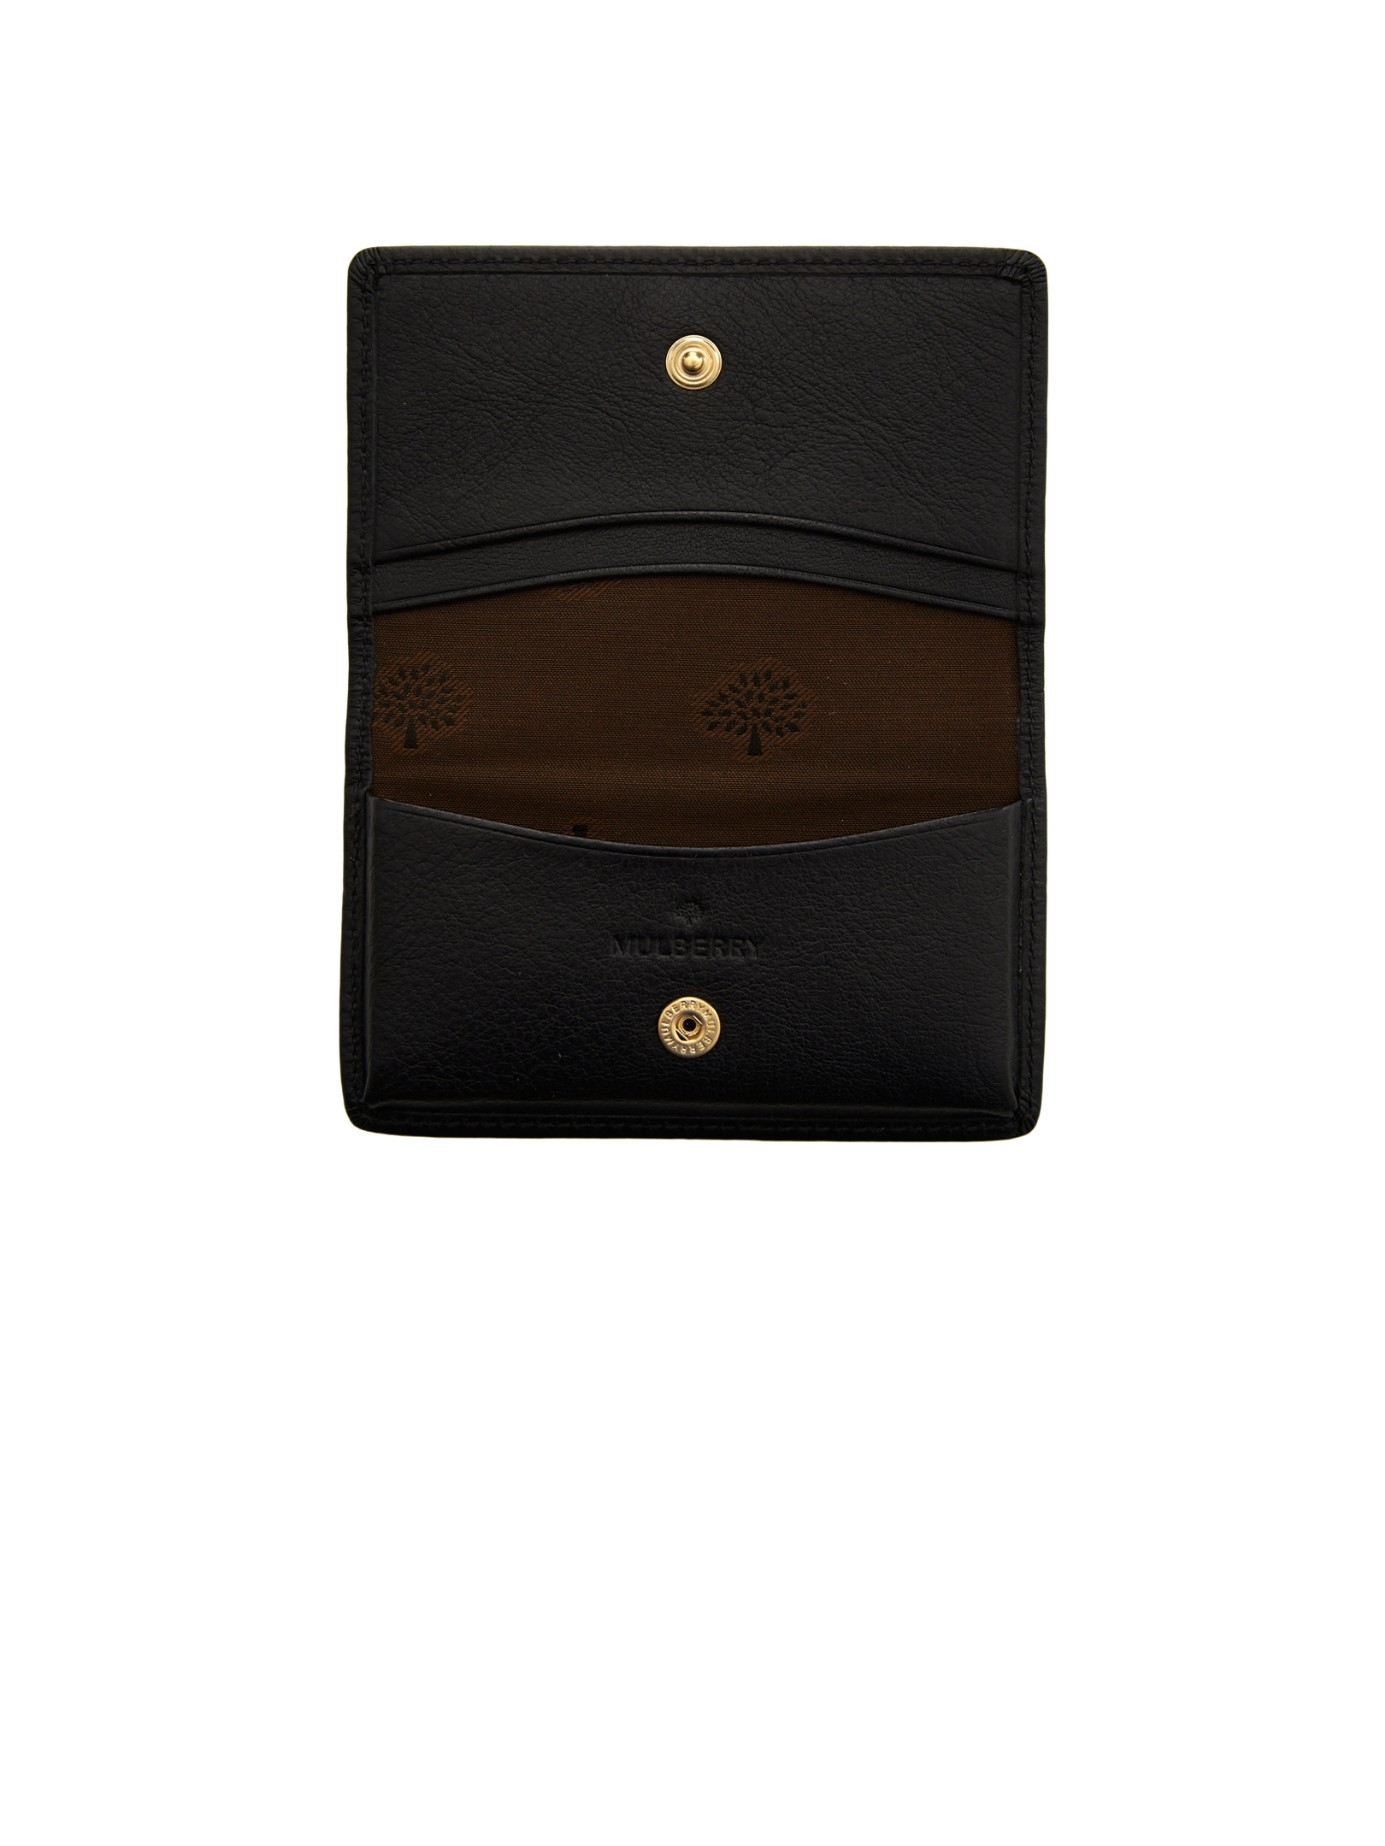 2e28843c5d12 Lyst - Mulberry Grained-leather Card Case in Black for Men